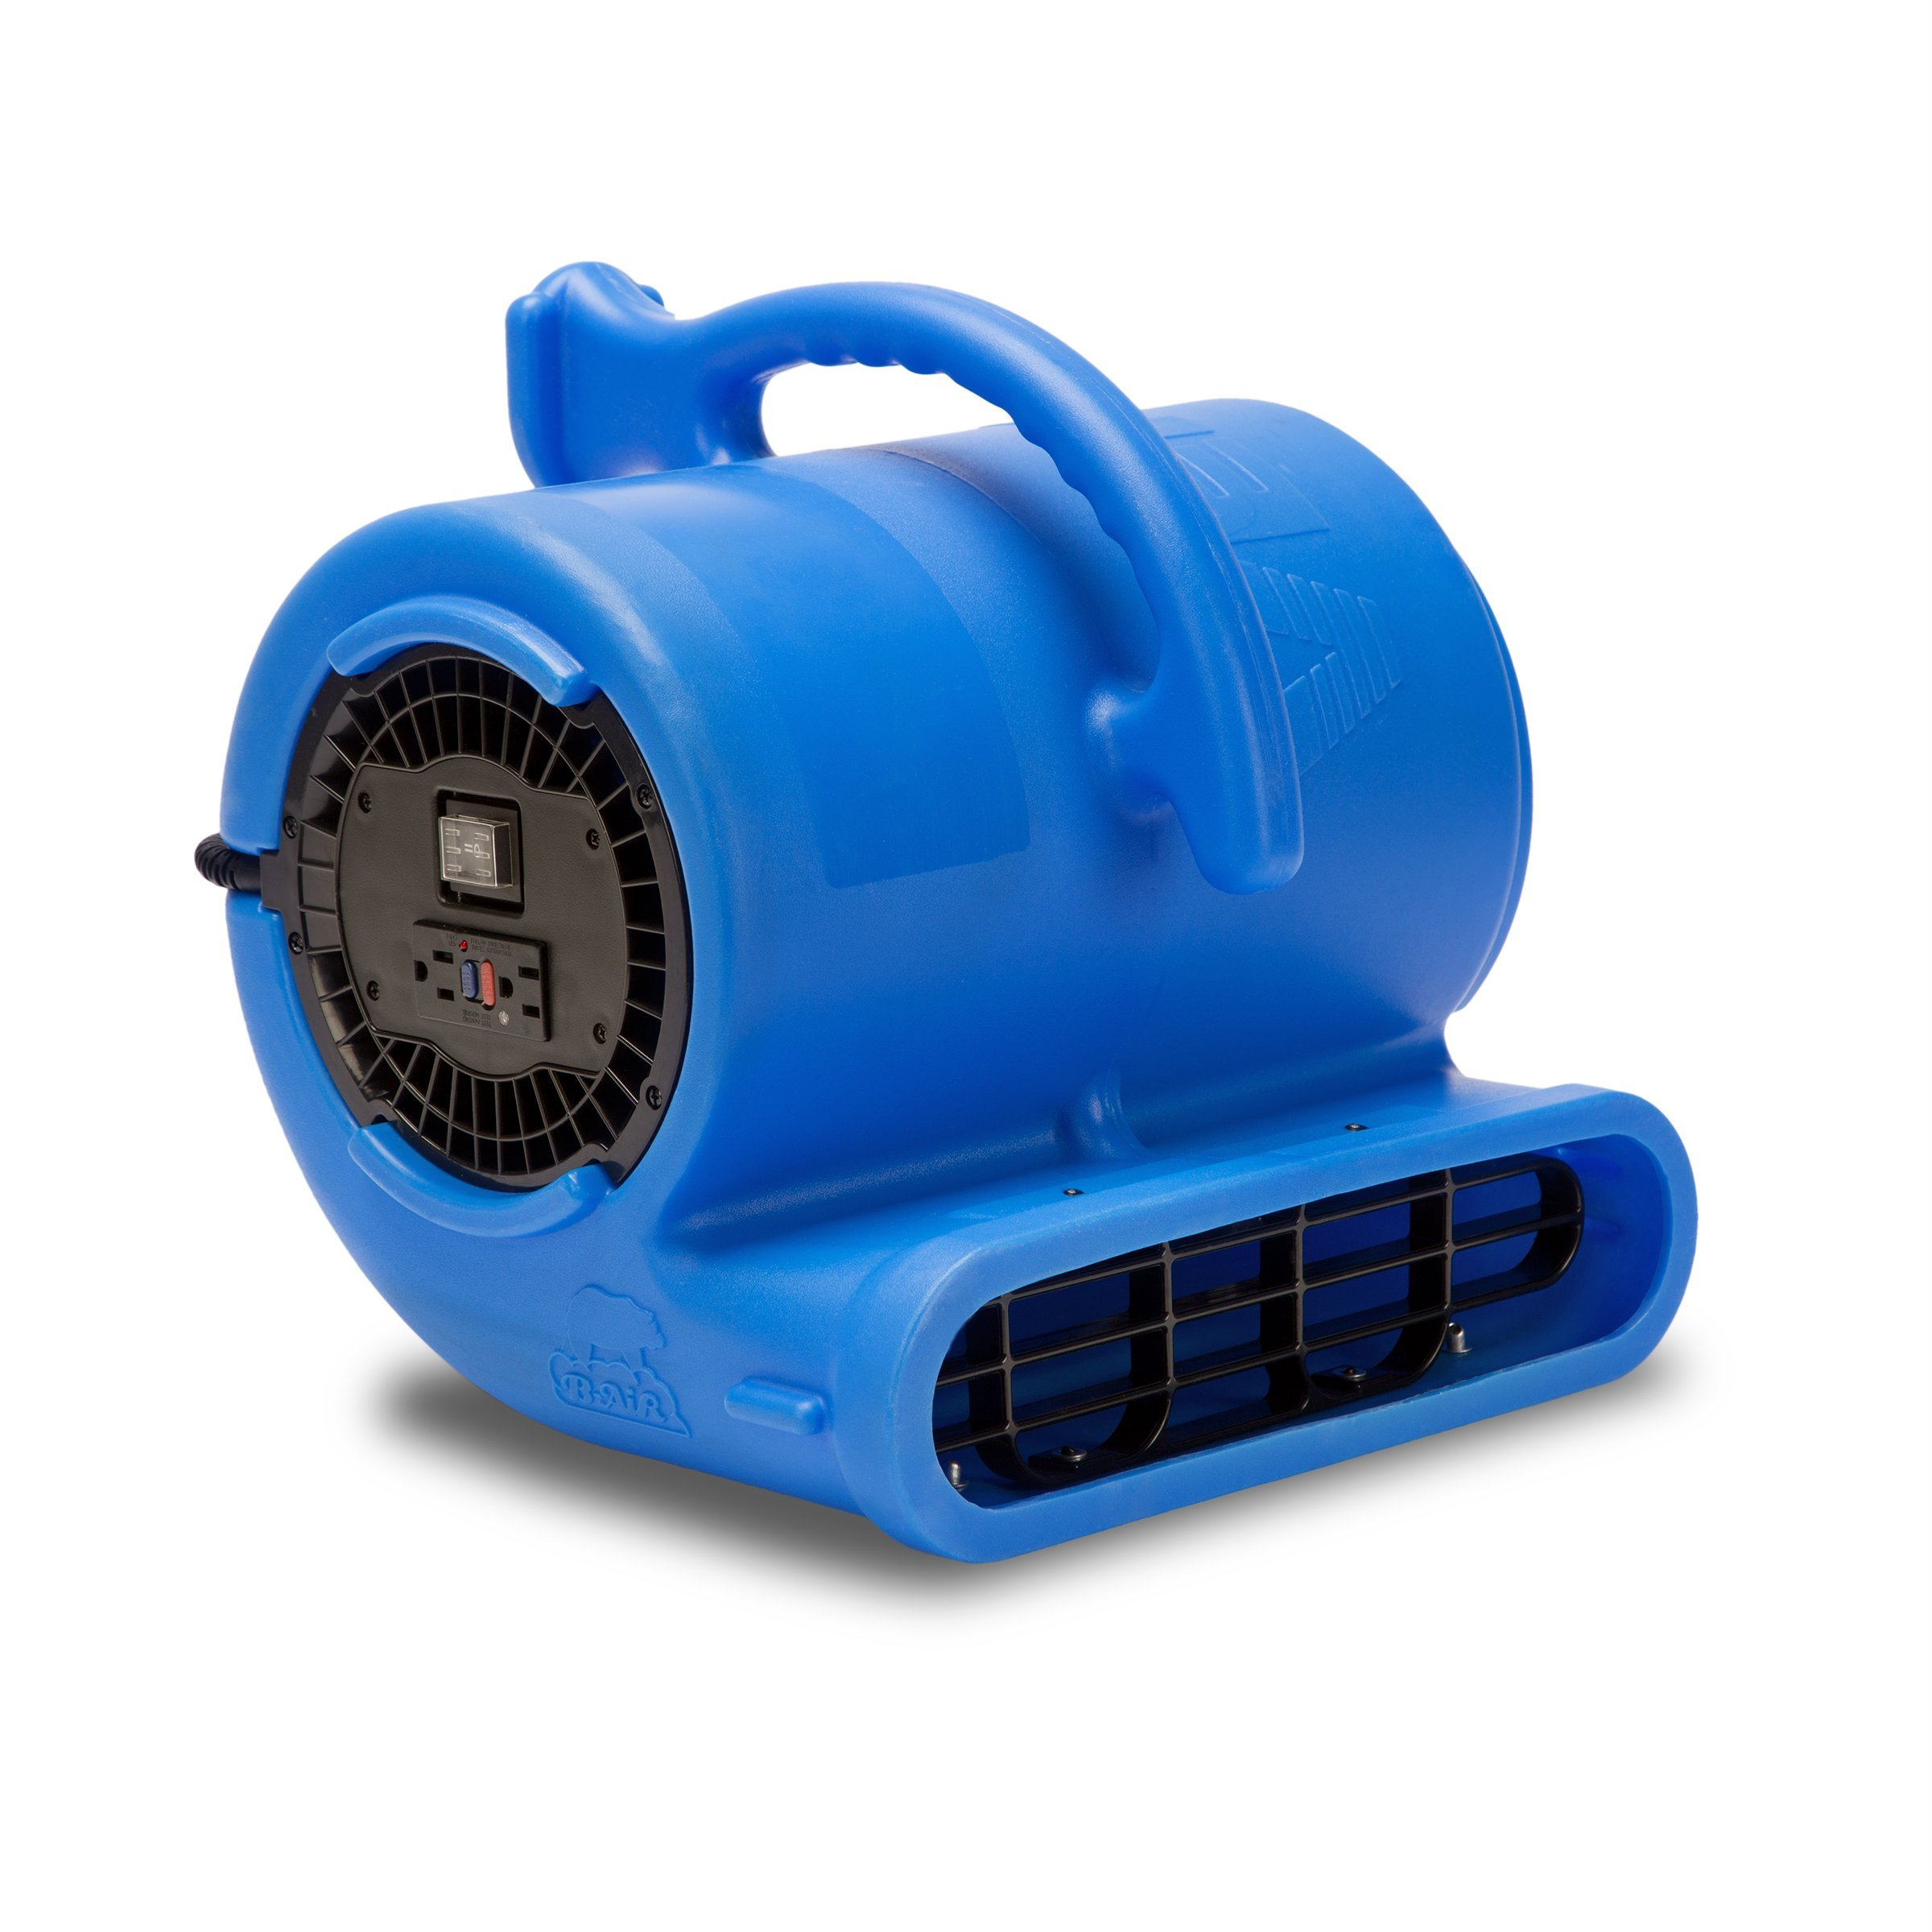 B-Air VP-33 1/3 HP 2530 CFM Air Mover for Water Damage Restoration Carpet Dryer Janitorial Floor Blower Fan, Blue (Renewed) by B-Air